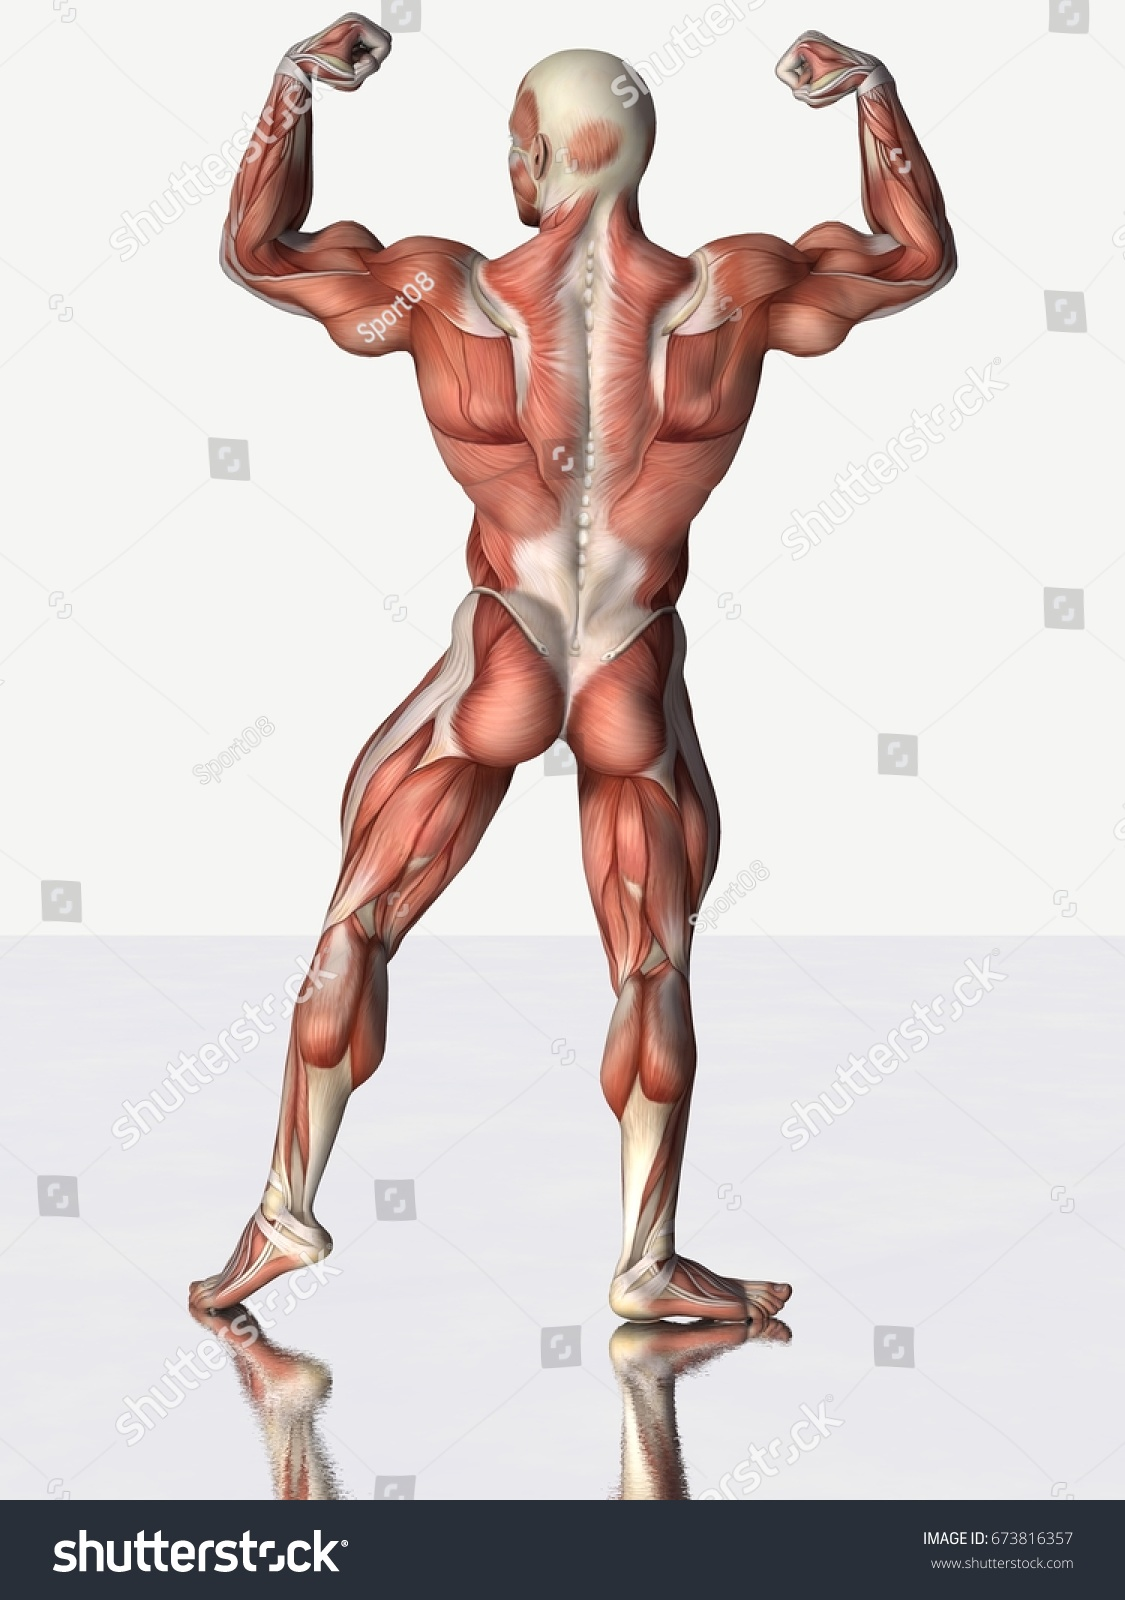 3 D Rendering Strong Muscles Anatomical Man Stock Illustration ...